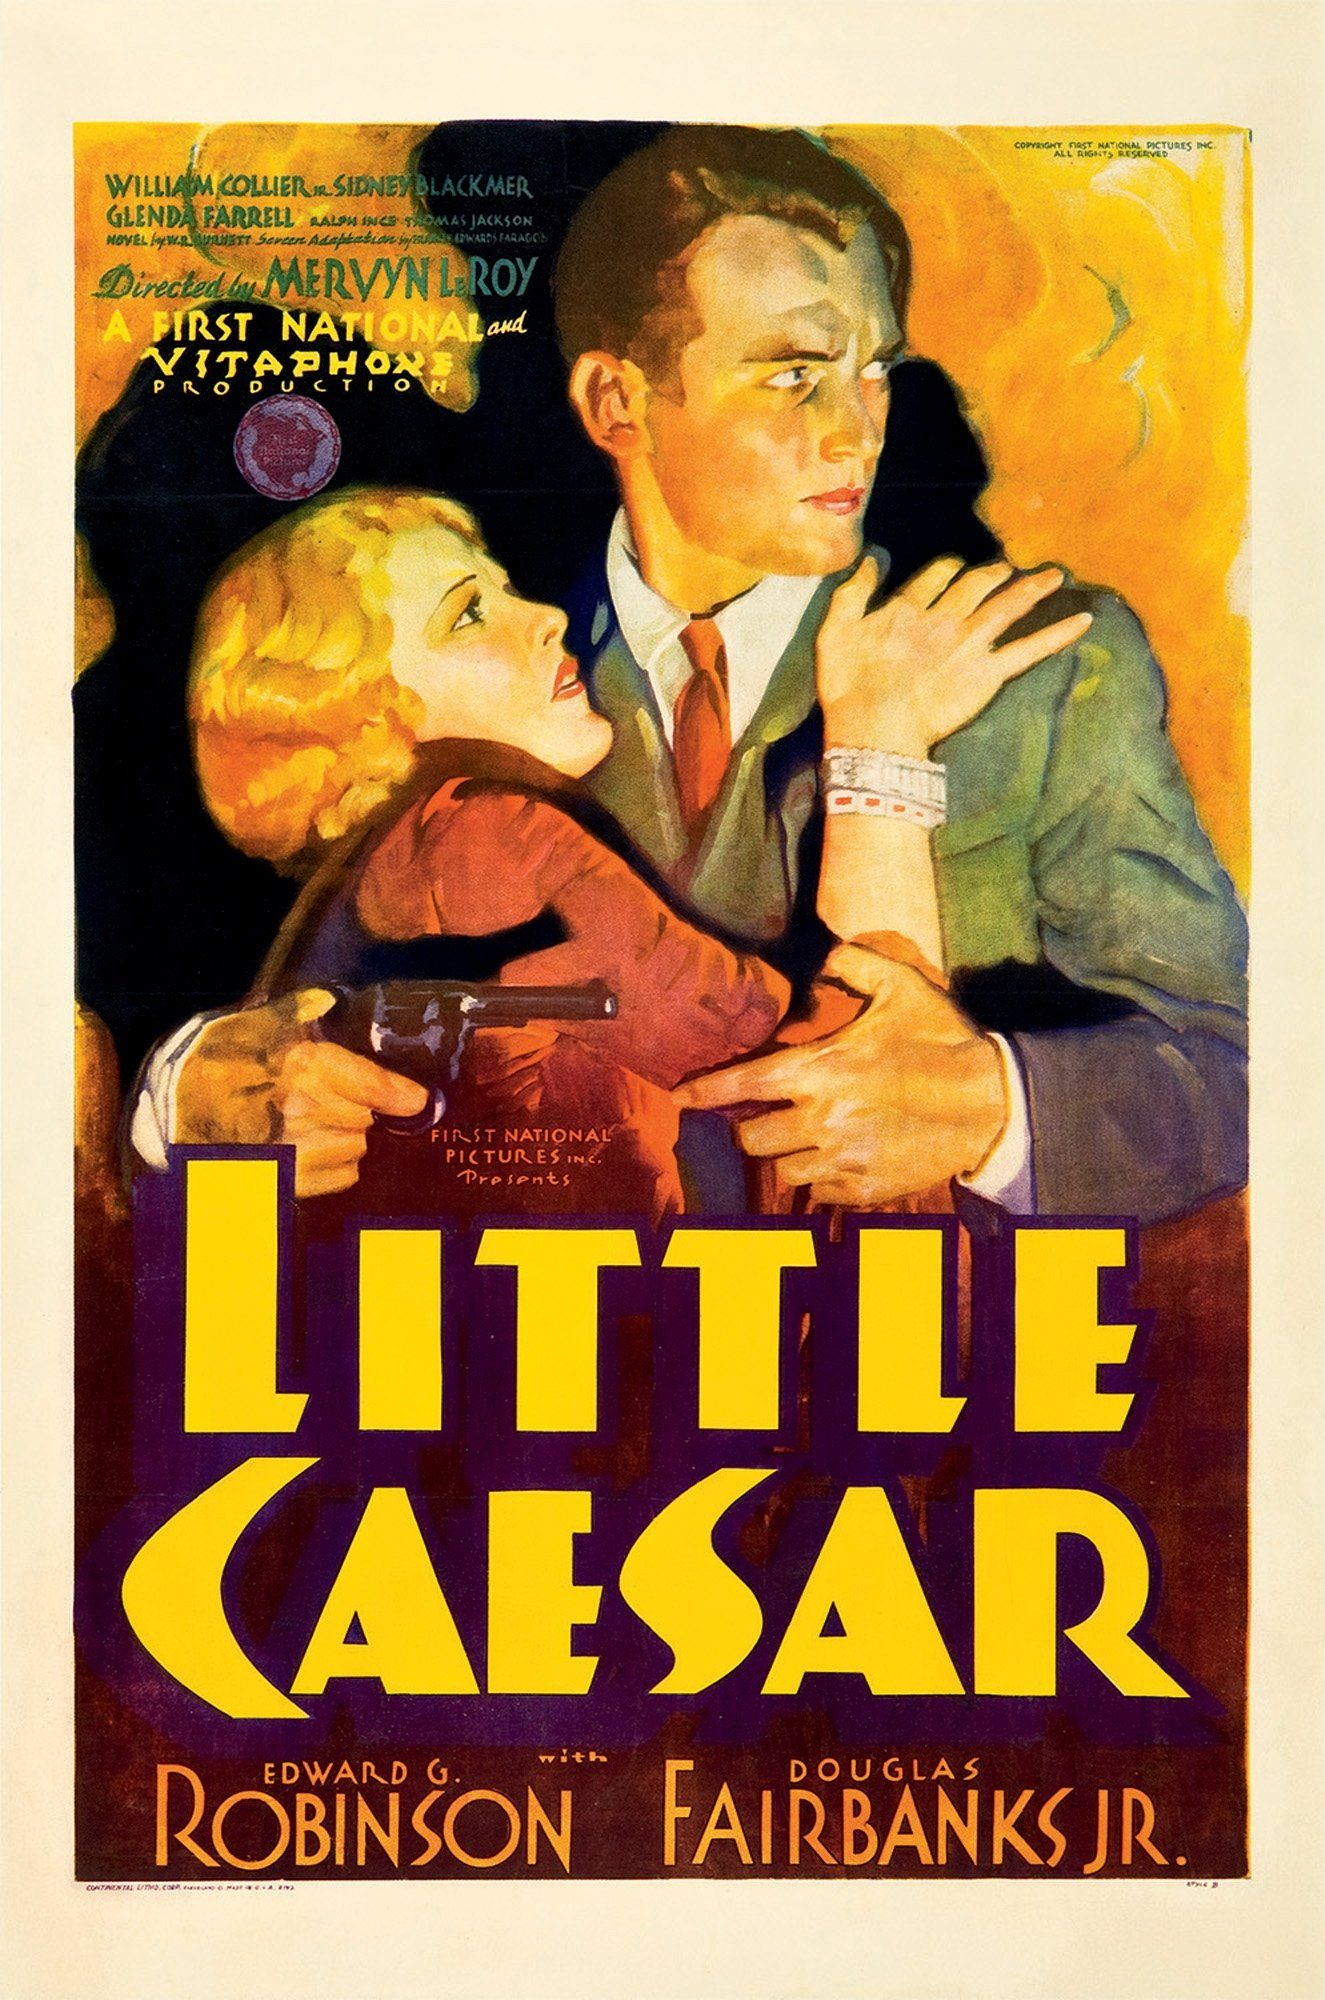 Classic Posters Archive | Pinterest | Movie, Film posters and Films